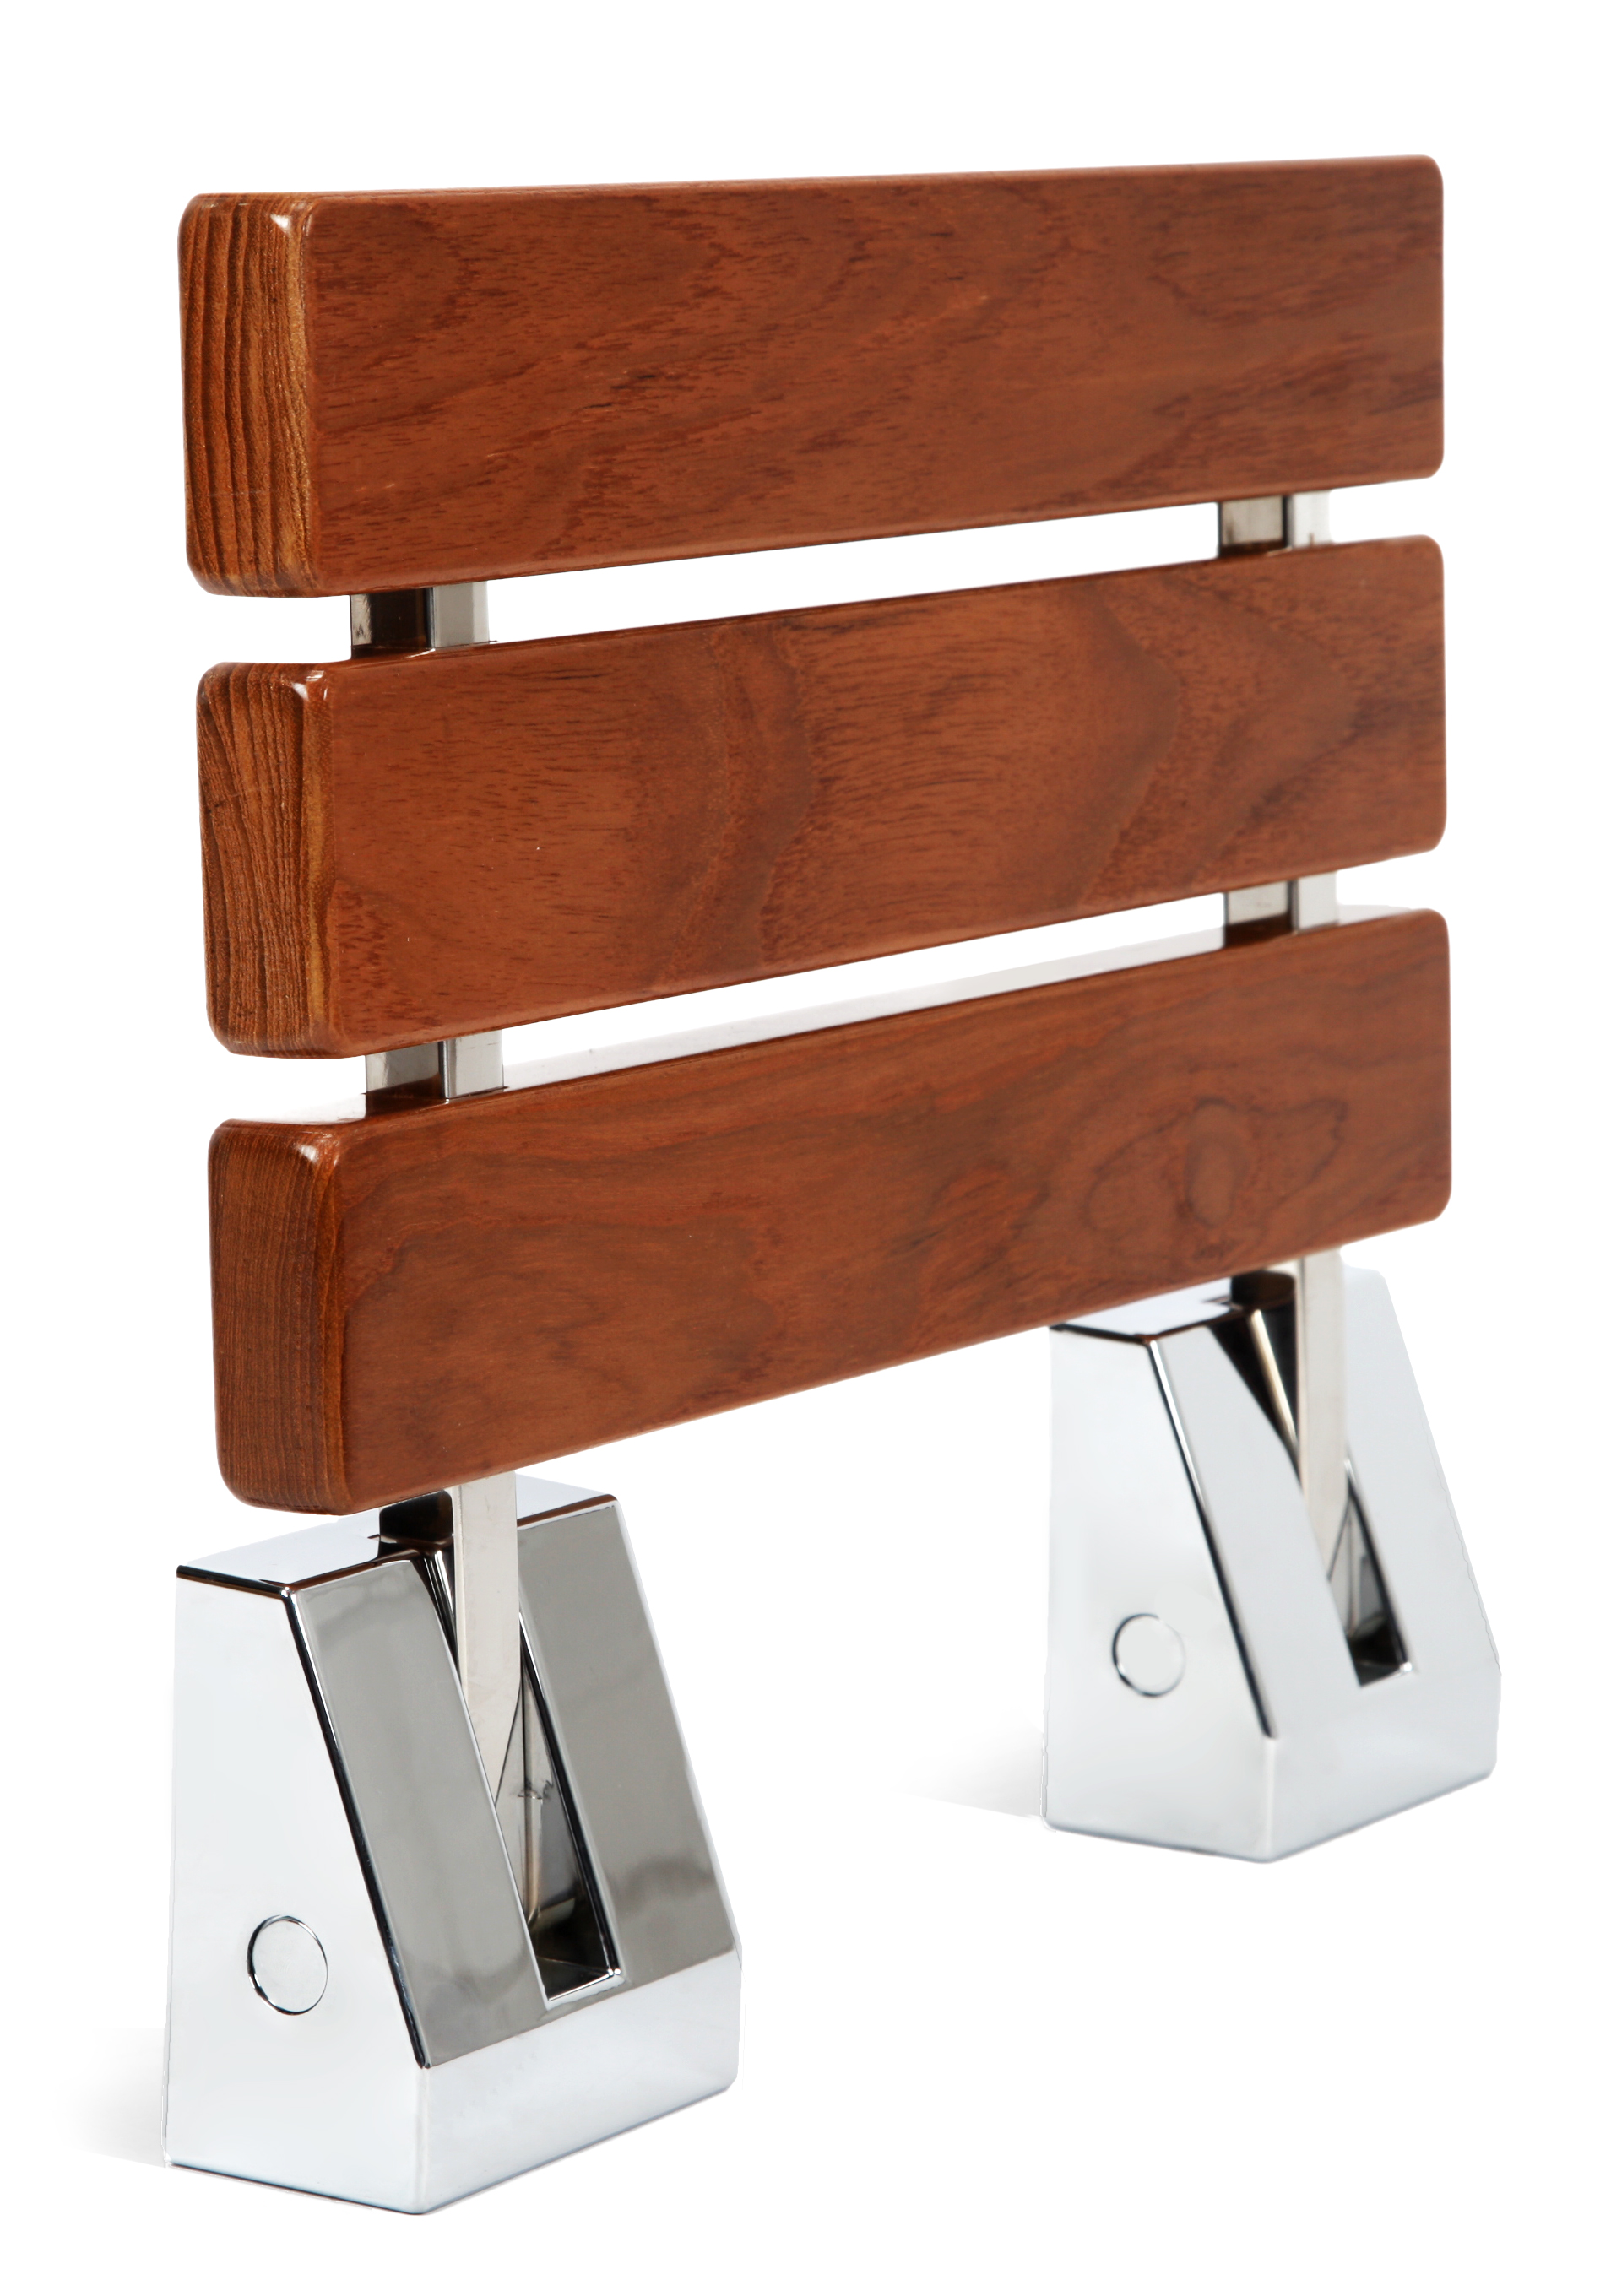 Kenley Folding Shower Seat Wooden Wall Mounted Bench ...